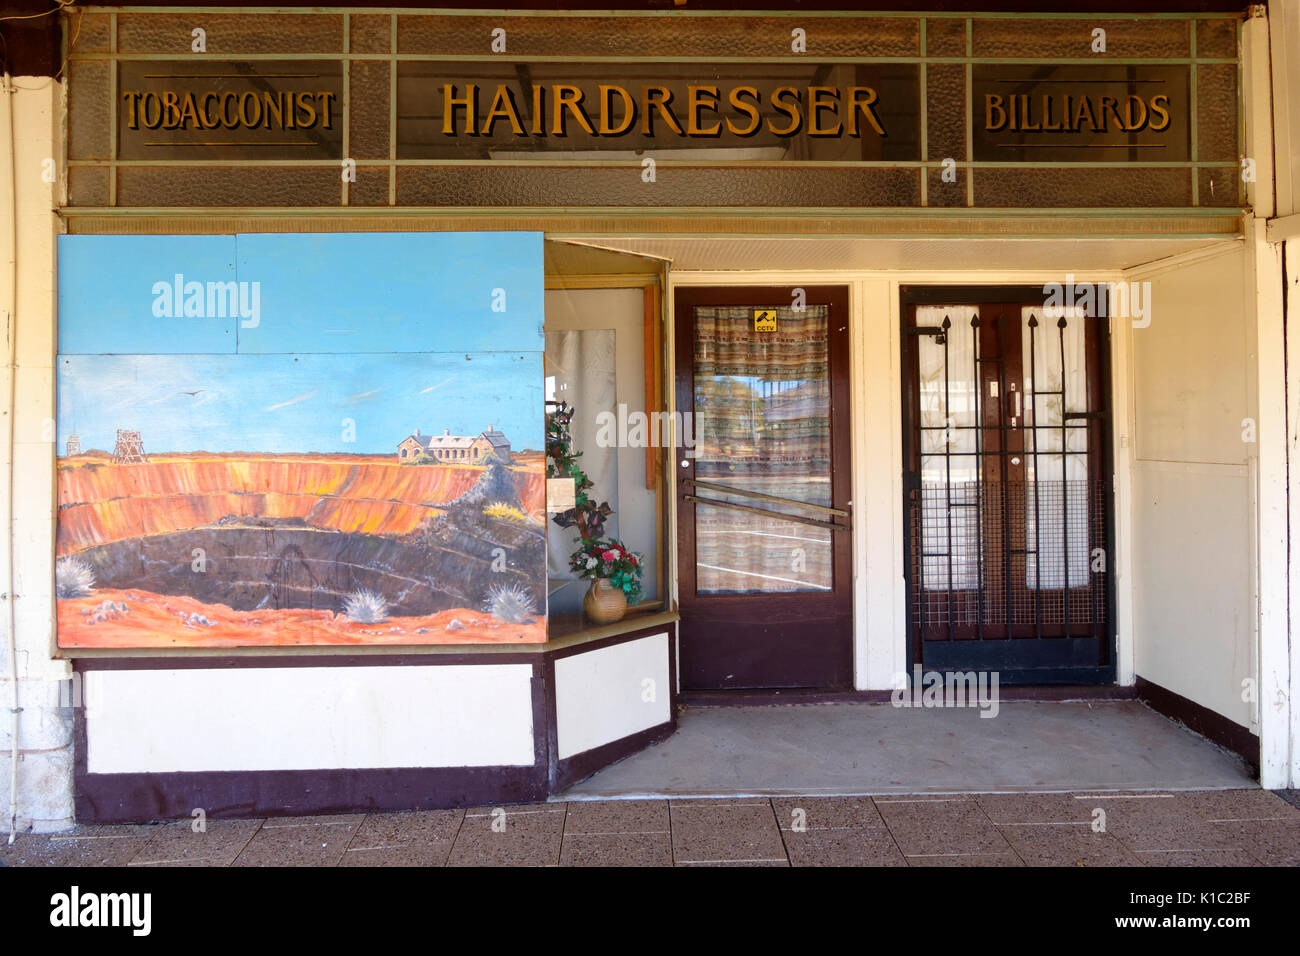 Hair dresser shop with mural of mining in window, Australian goldfields town, Cue, Murchison, Western Australia - Stock Image